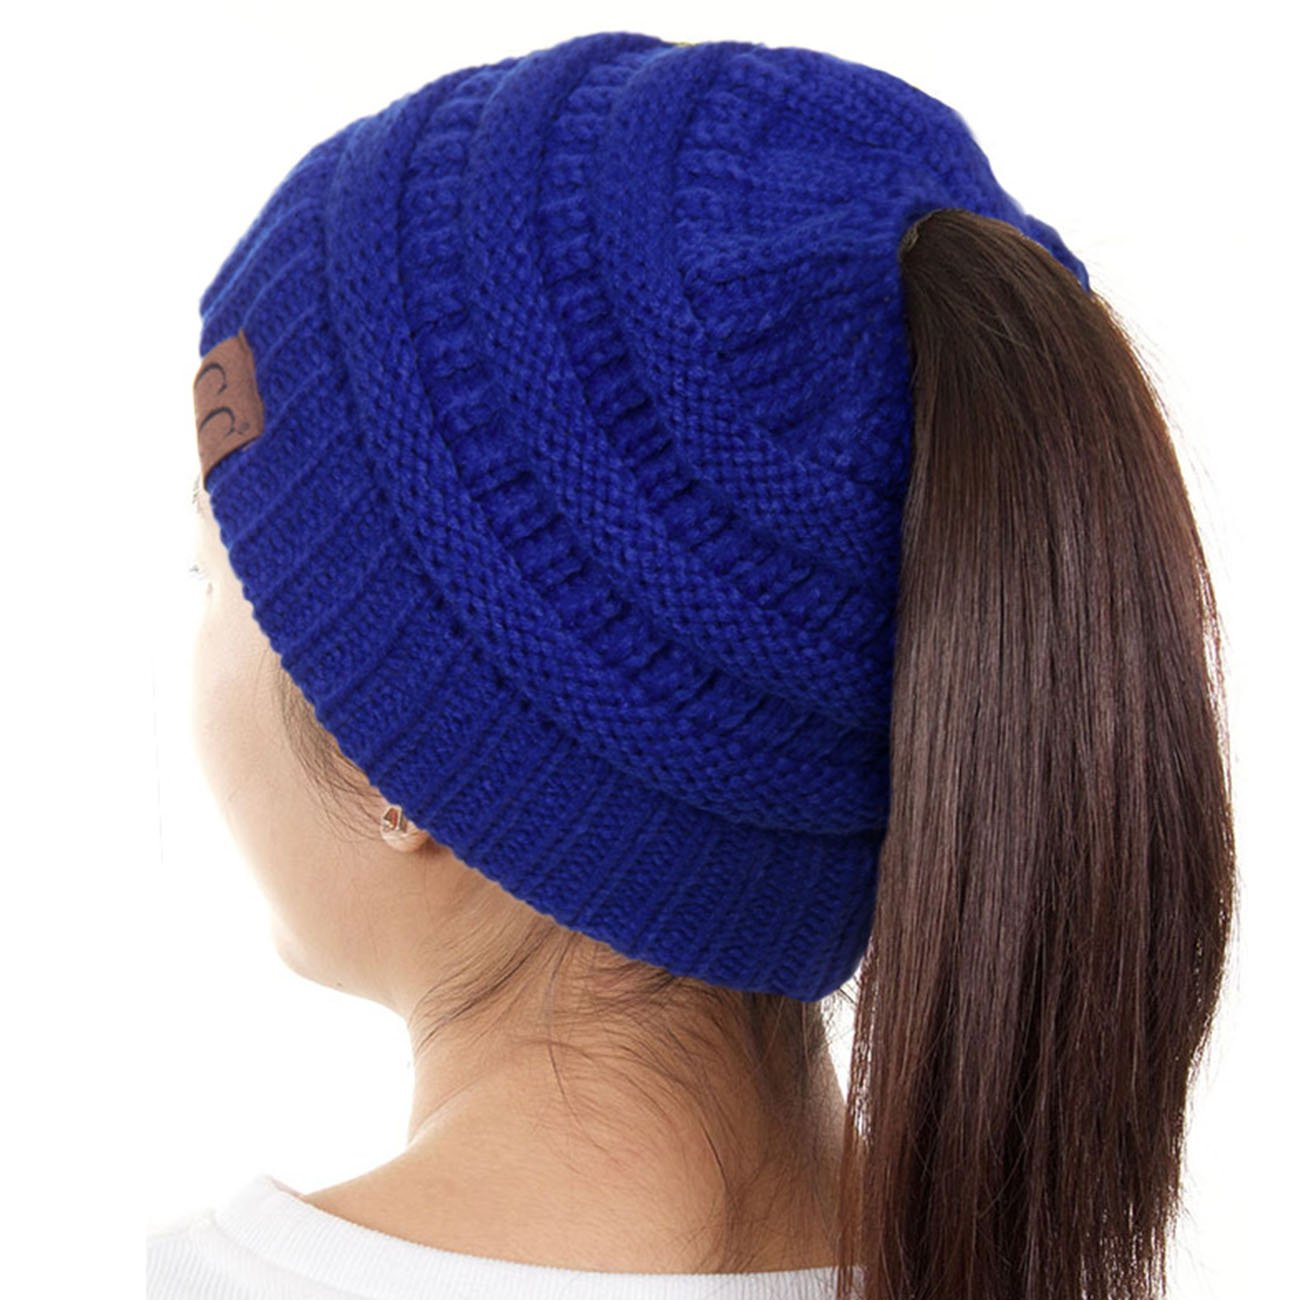 ScarvesMe C.C Beanietail Ponytail Messy Bun Solid Ribbed Beanie Hat Cap (Royal Blue)